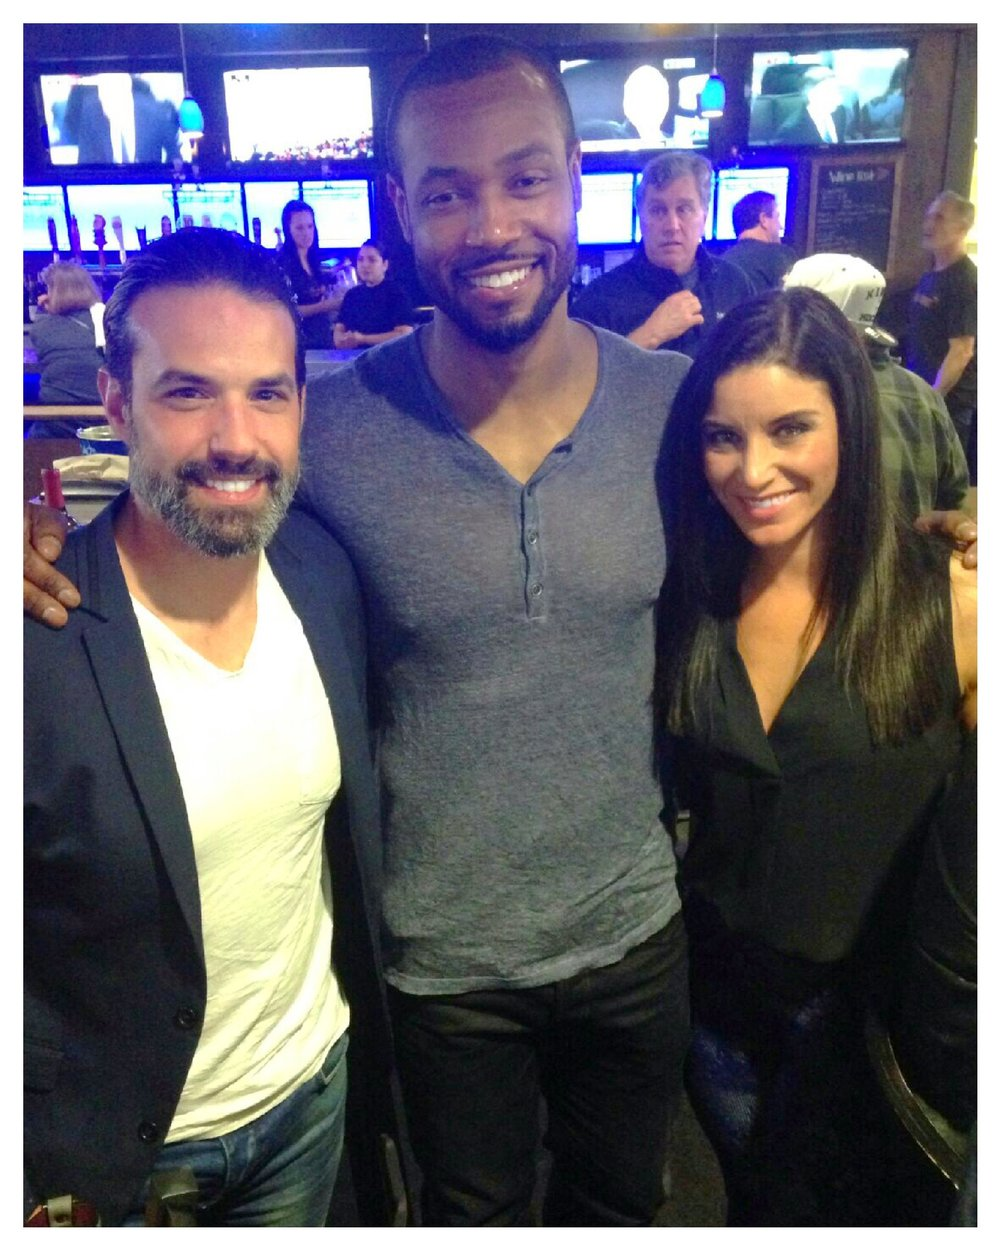 In photo Left to Right:  Chris Ferraro - Retired NHL athlete who notably played for the NY Rangers with his twin brother Peter!  Isaiah Mustafa - Actor and former NFL practice squad athlete who is the face of Old Spice Commercials!   Me - You know me already.